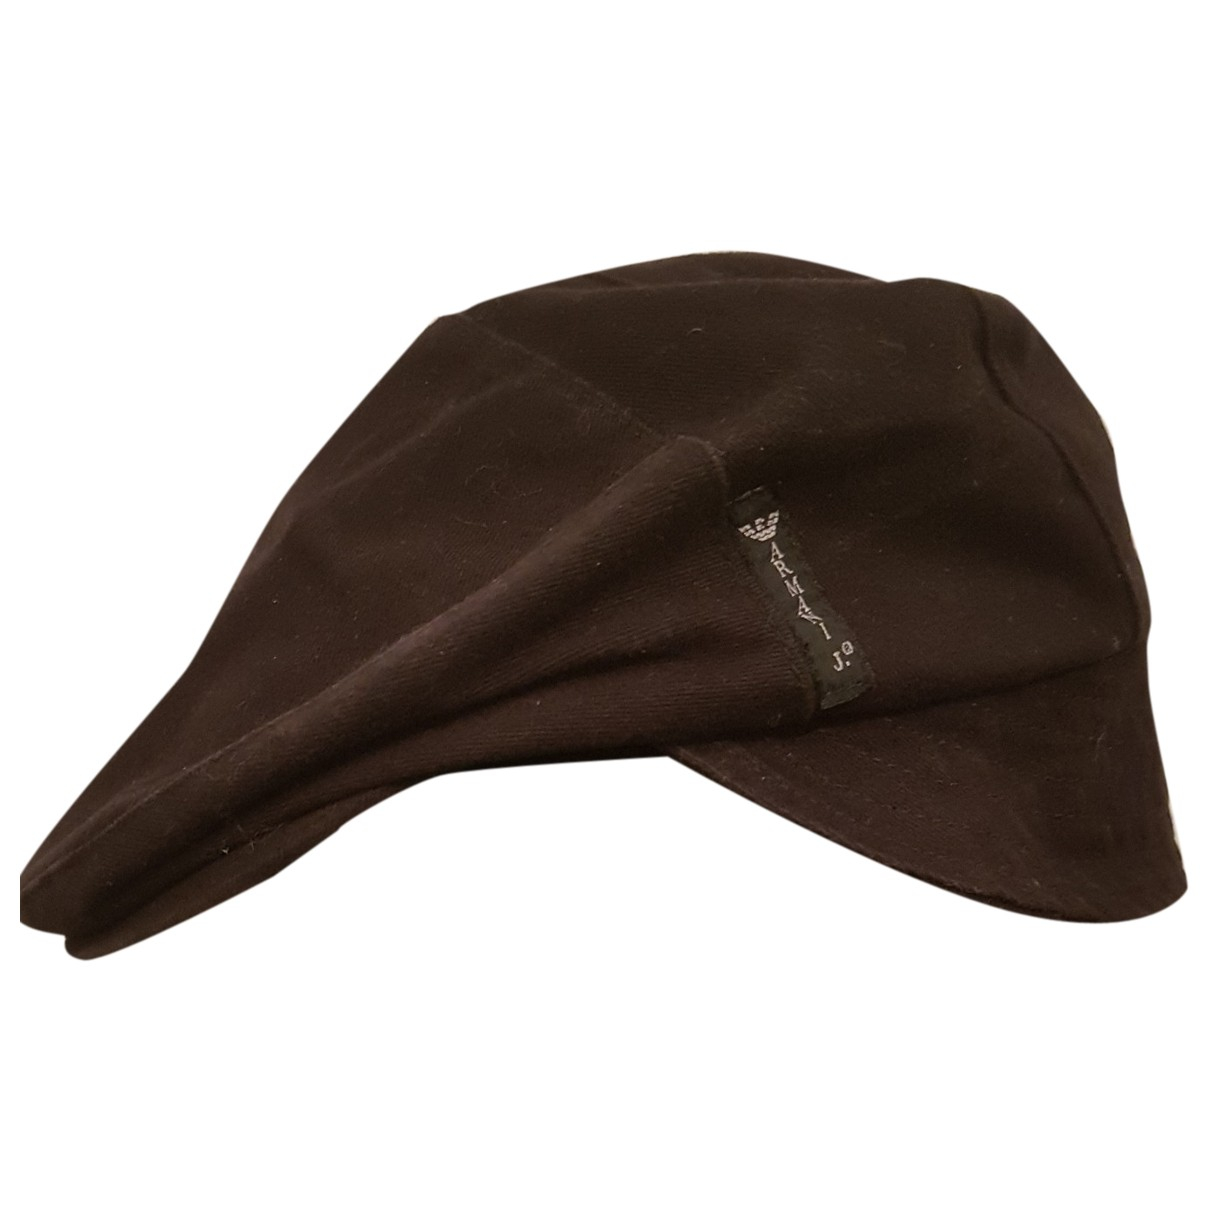 Armani Jeans N Brown Cotton hat & pull on hat for Men 56 cm